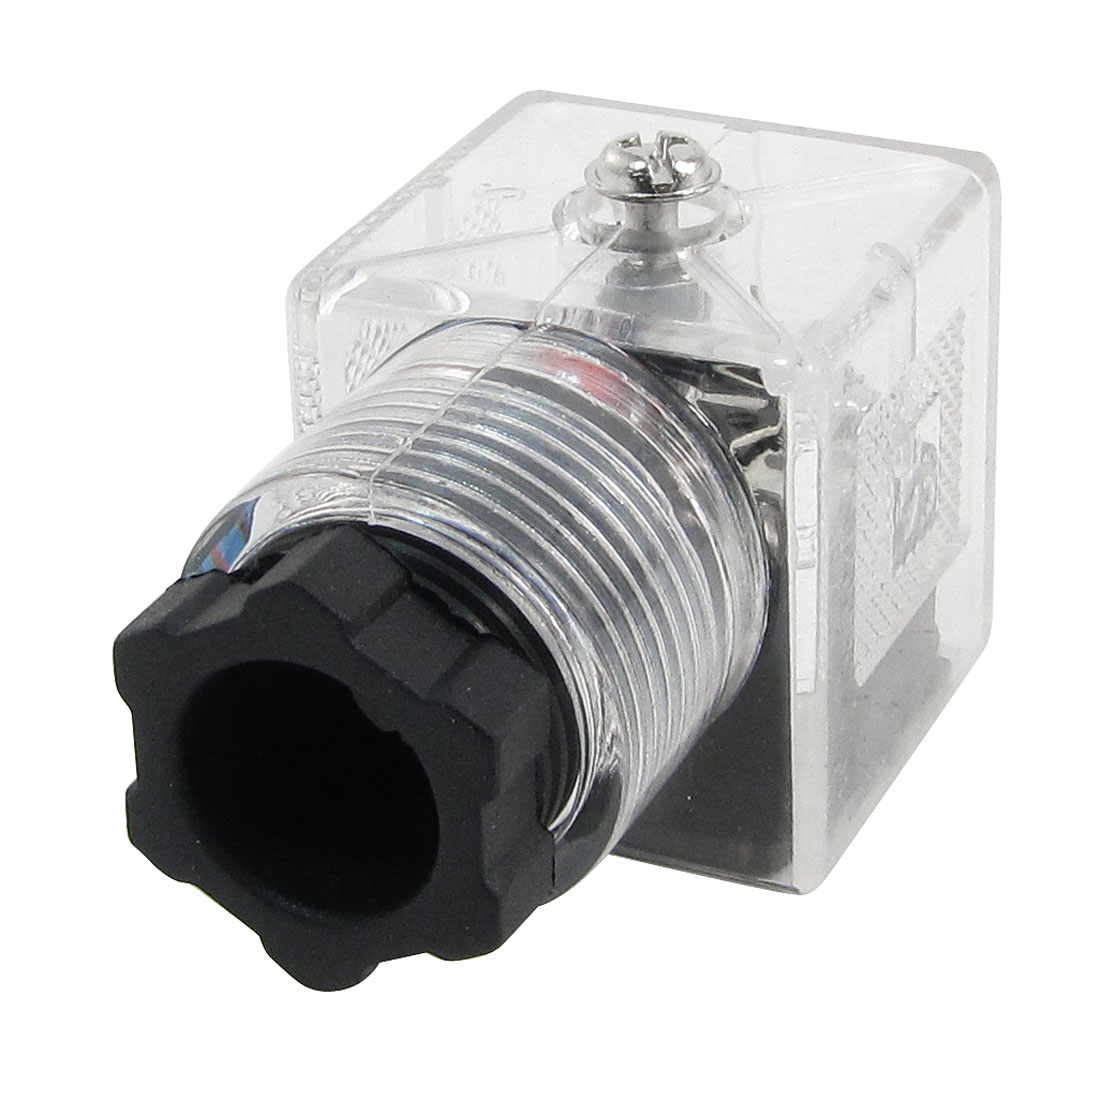 Plastic Shell 3 Terminals DIN LED Solenoid Valve Connector 220VAC